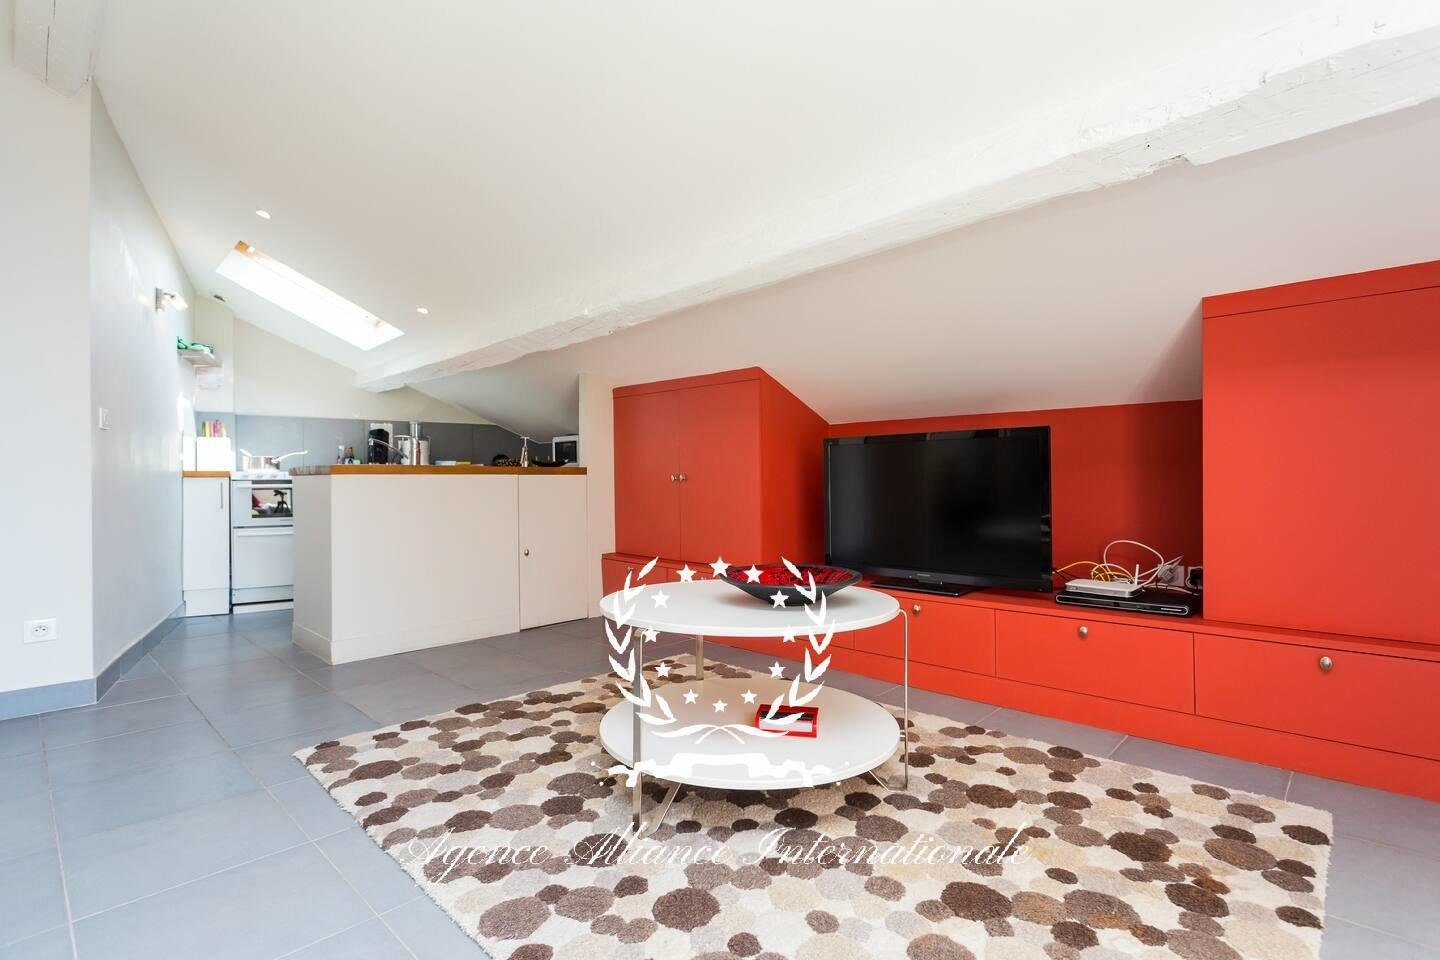 BEAUTIFUL 2 BEDROOMS NEAR BY CROISETTE AND BEACHES